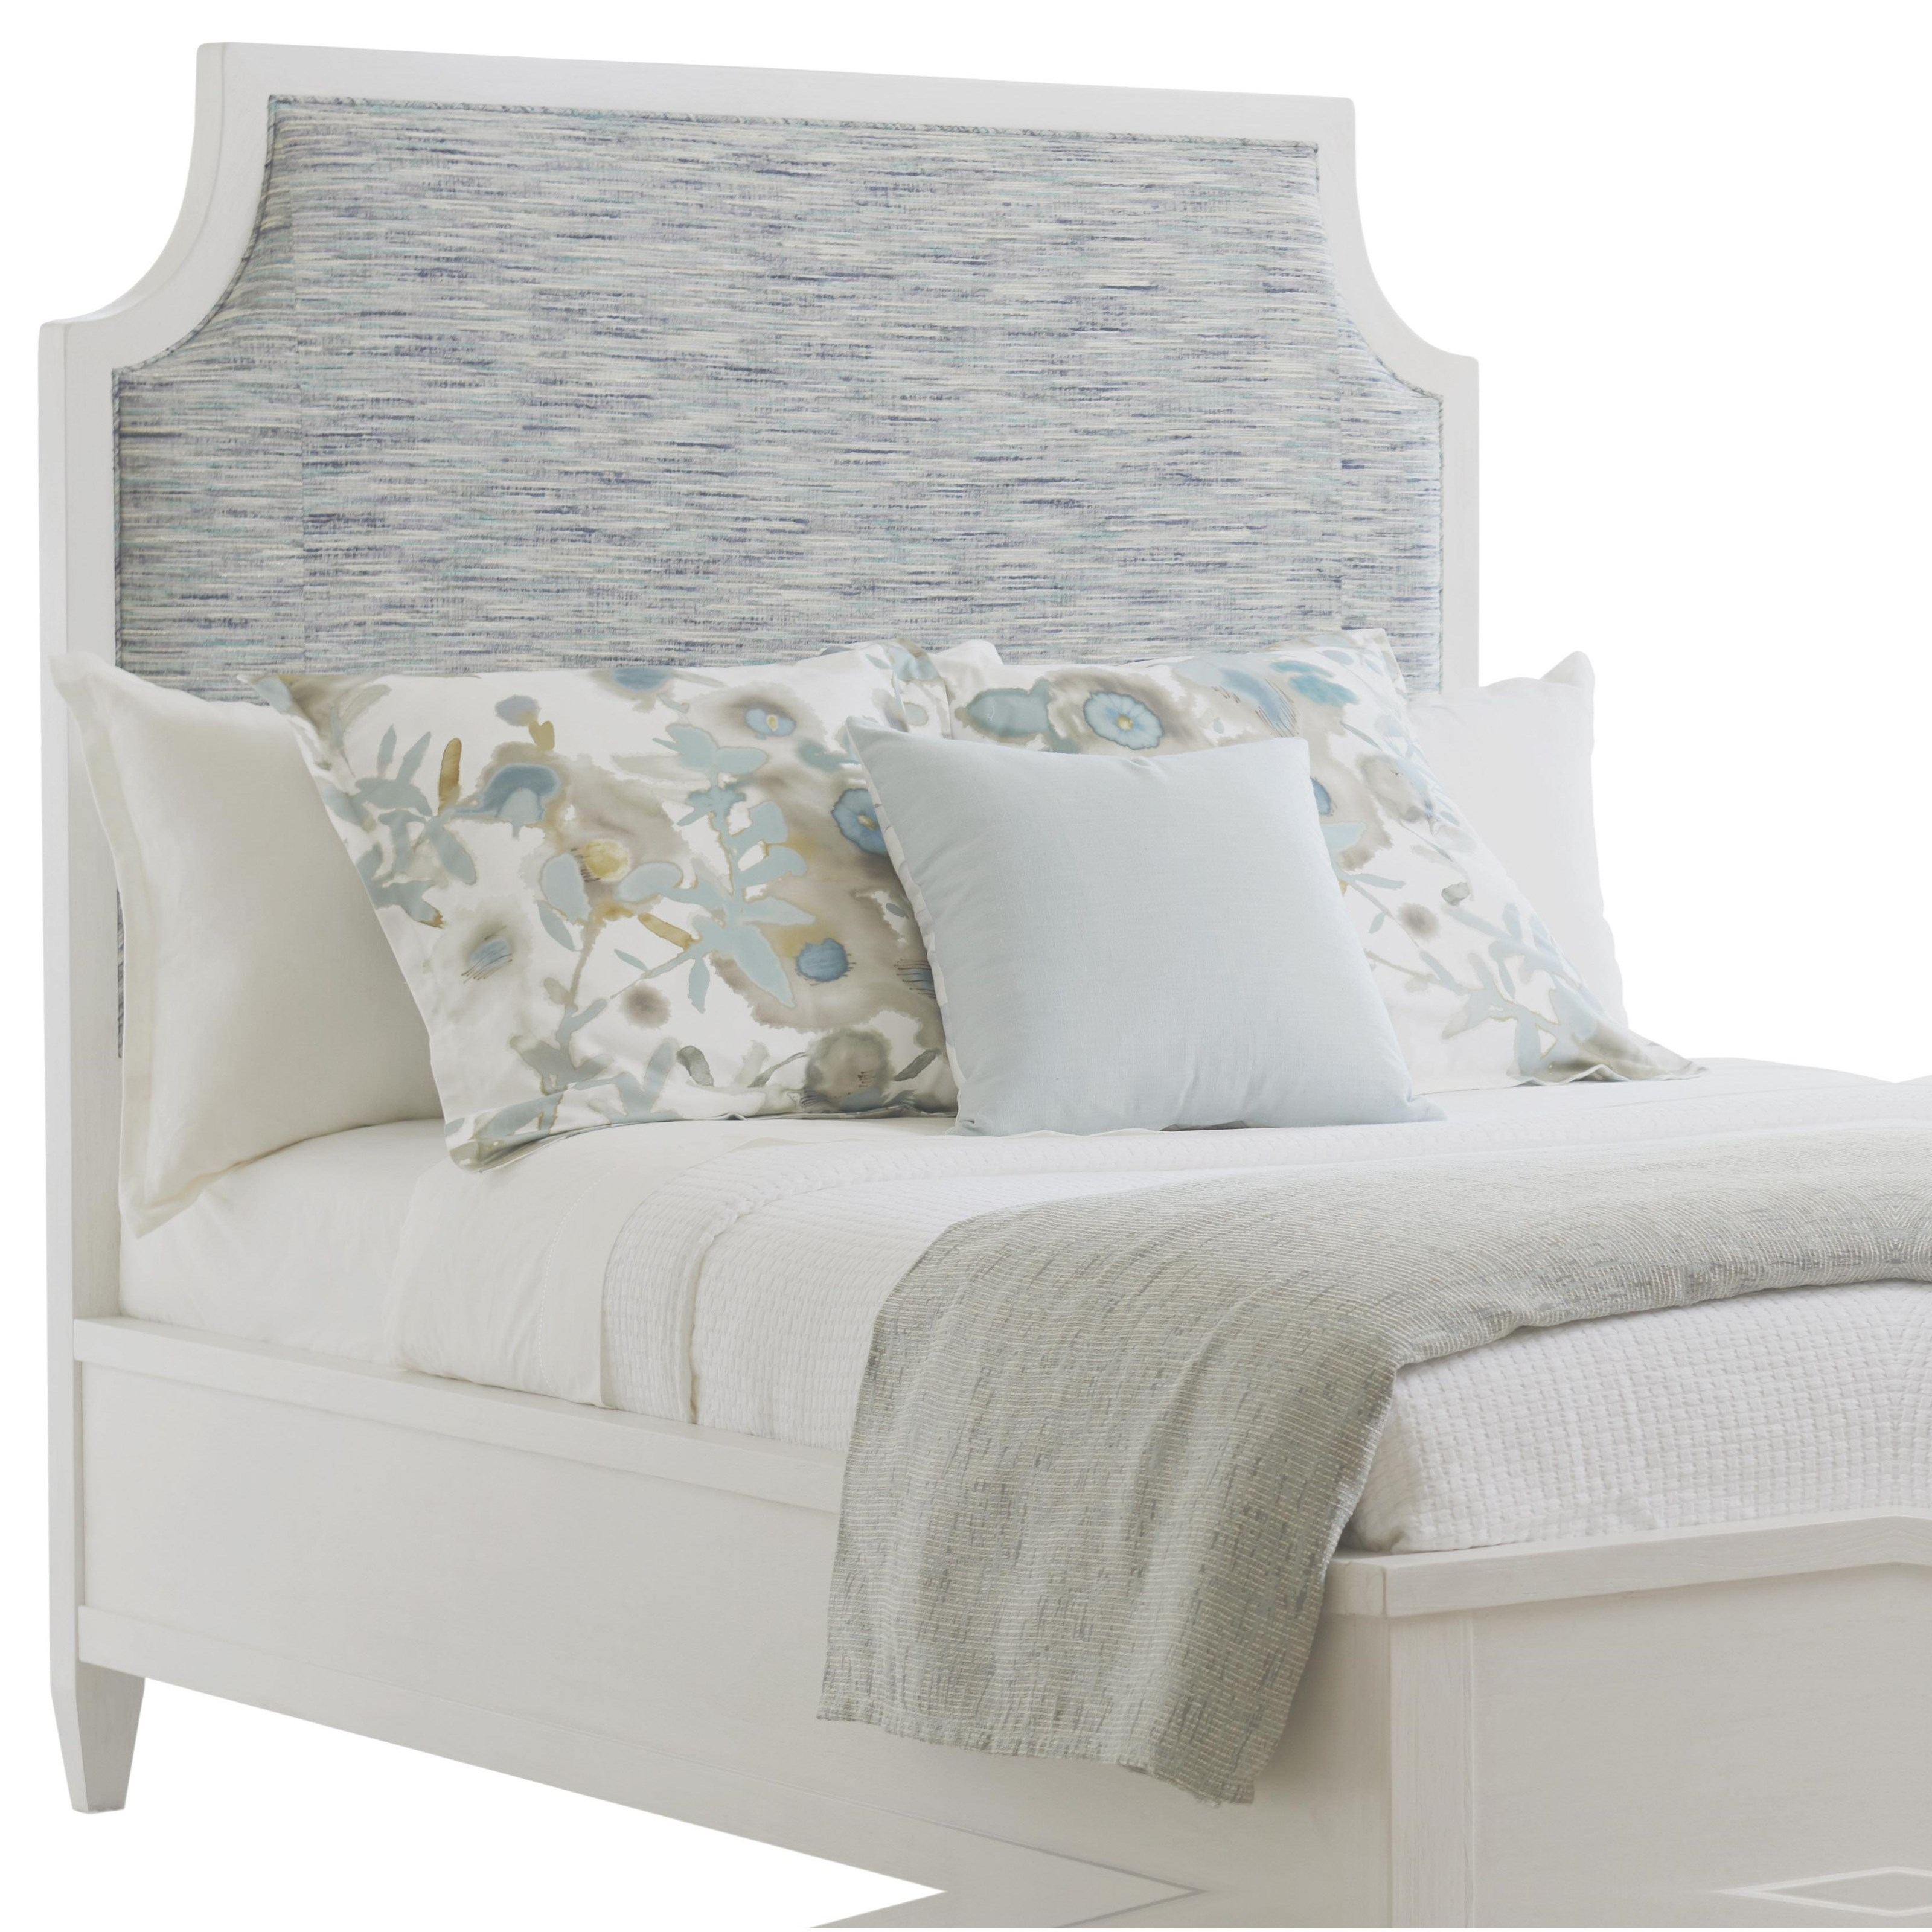 Ocean Breeze Belle Isle Upholstered Headboard Queen by Tommy Bahama Home at Baer's Furniture